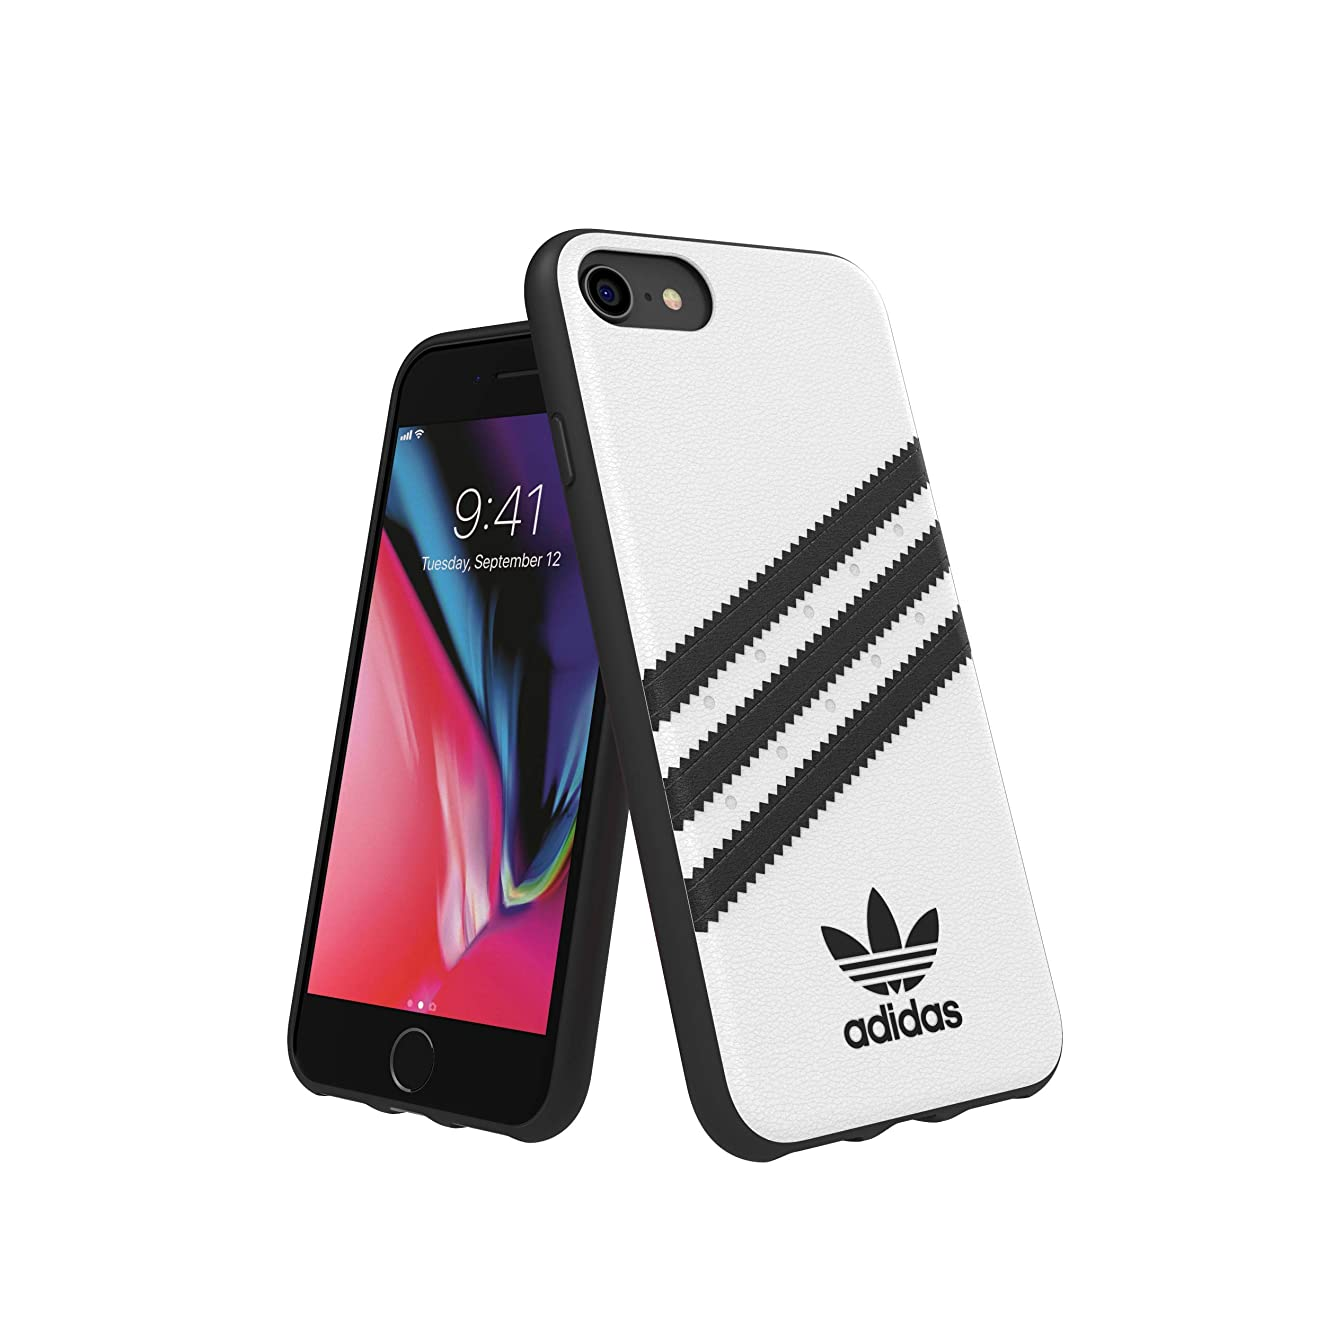 adidas OR Moulded Case PU FW18 for iPhone 6/6S/7/8